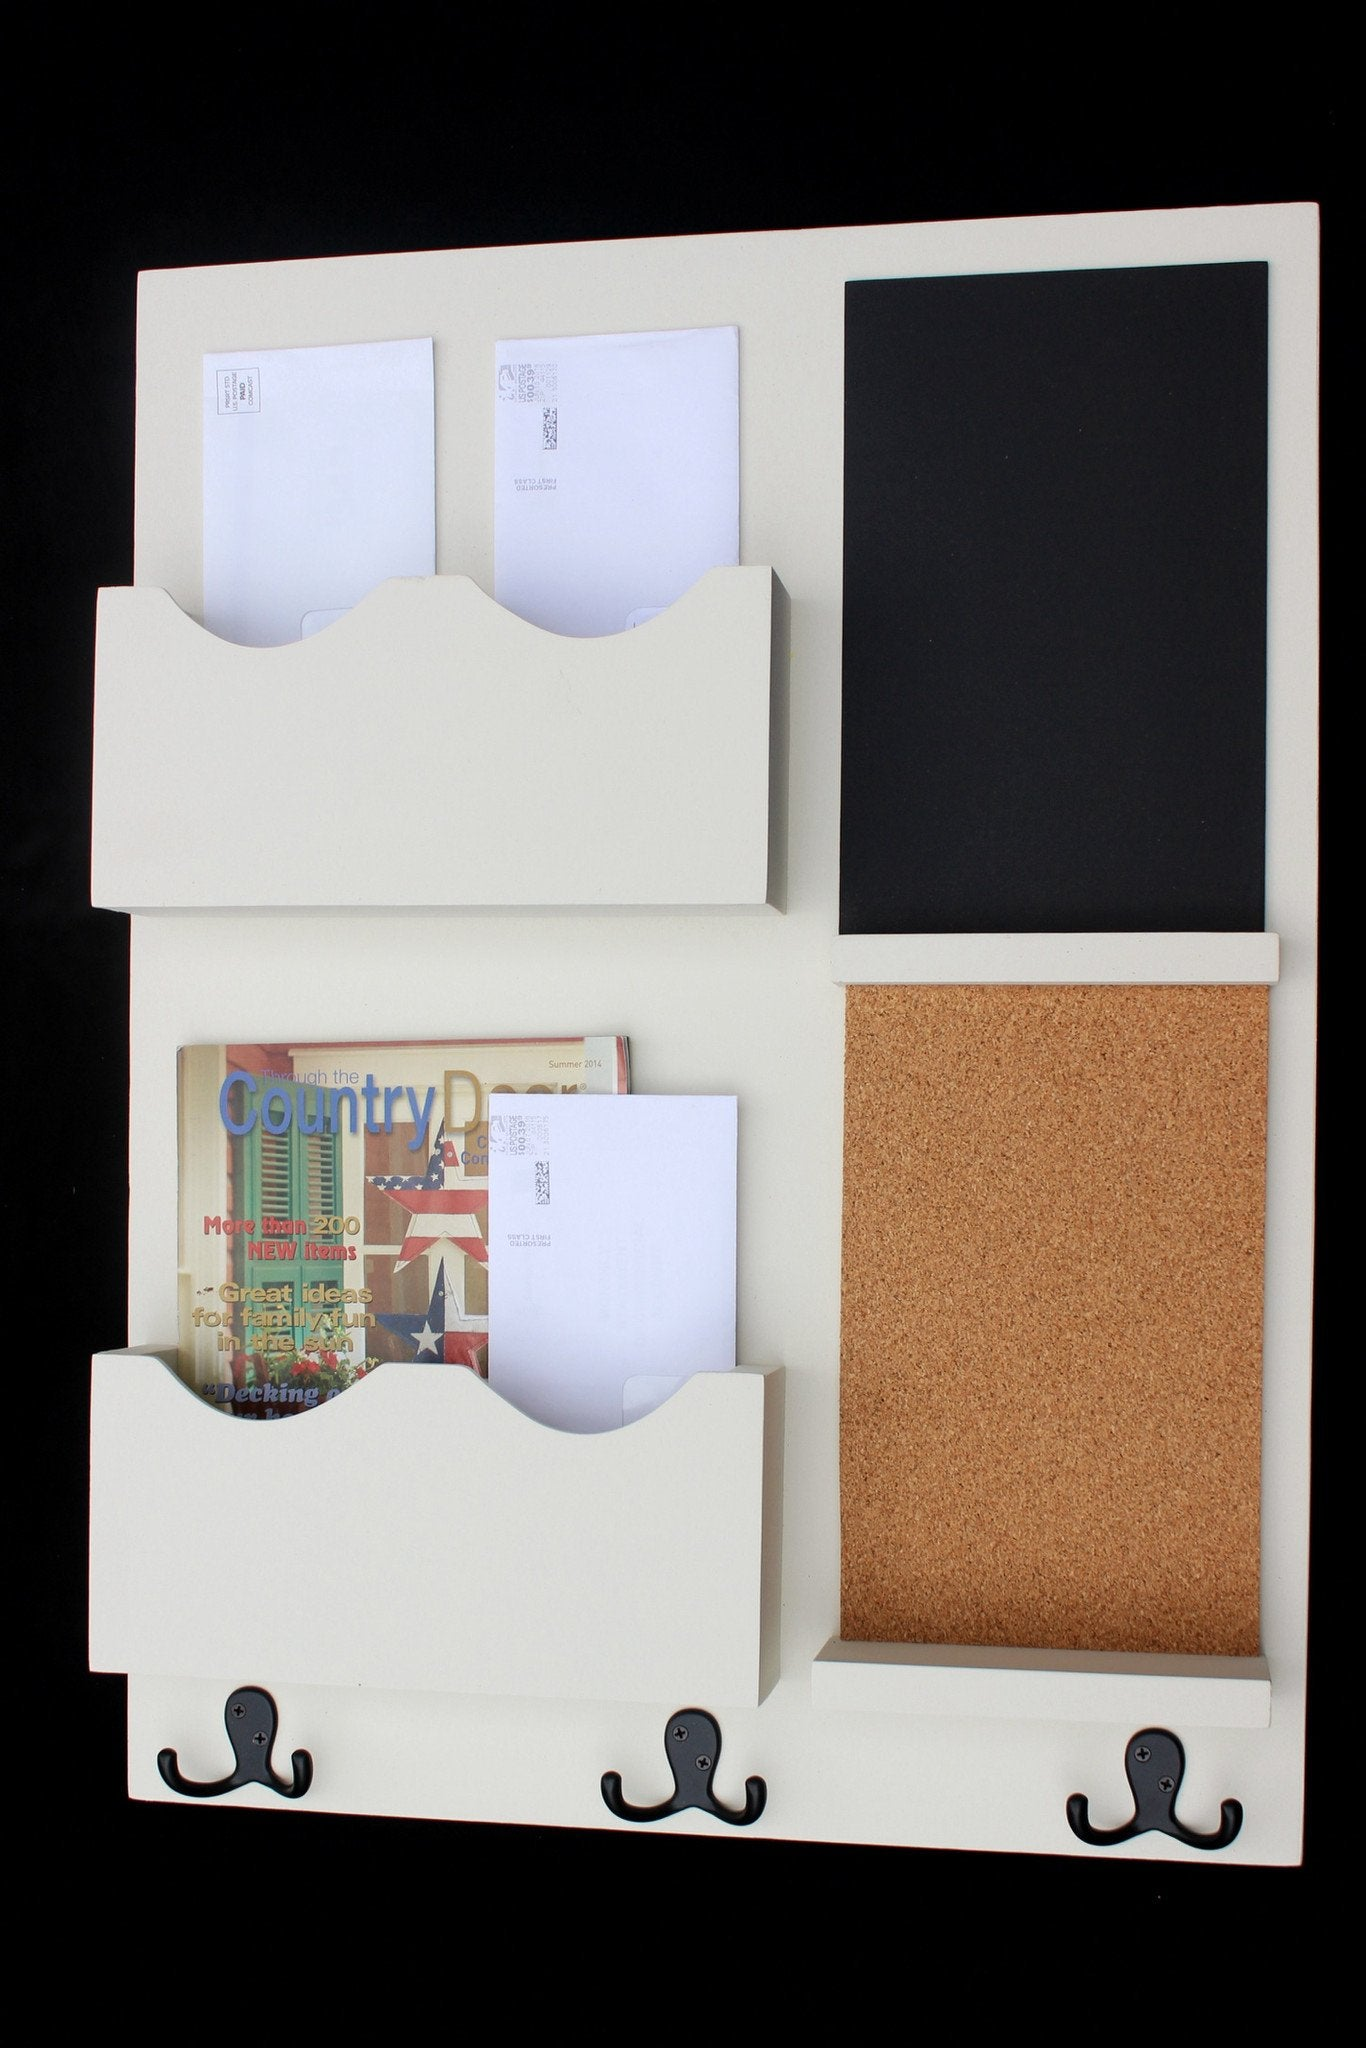 Mail Organizer - Cork Board - White Board - Key Hooks